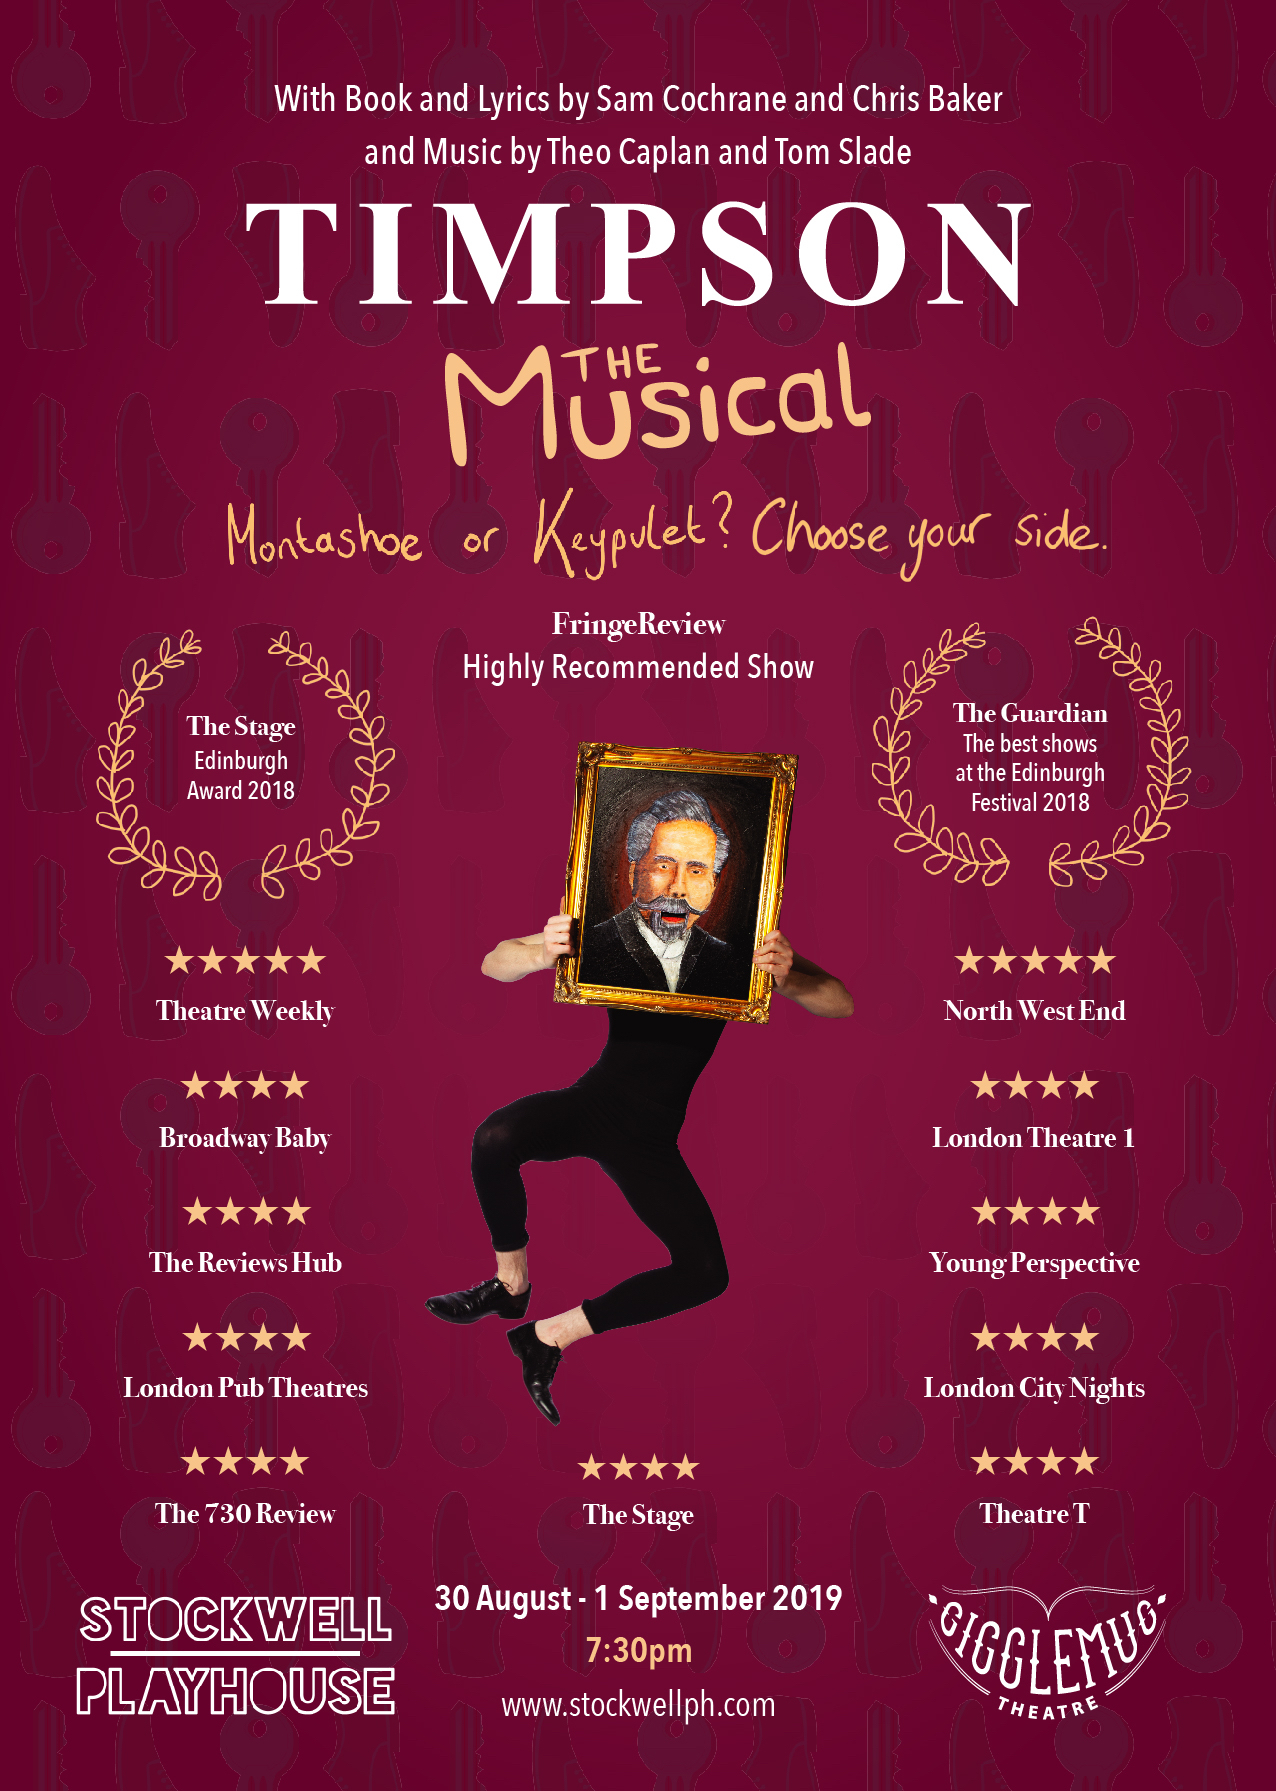 Timpson: The Musical Artwork